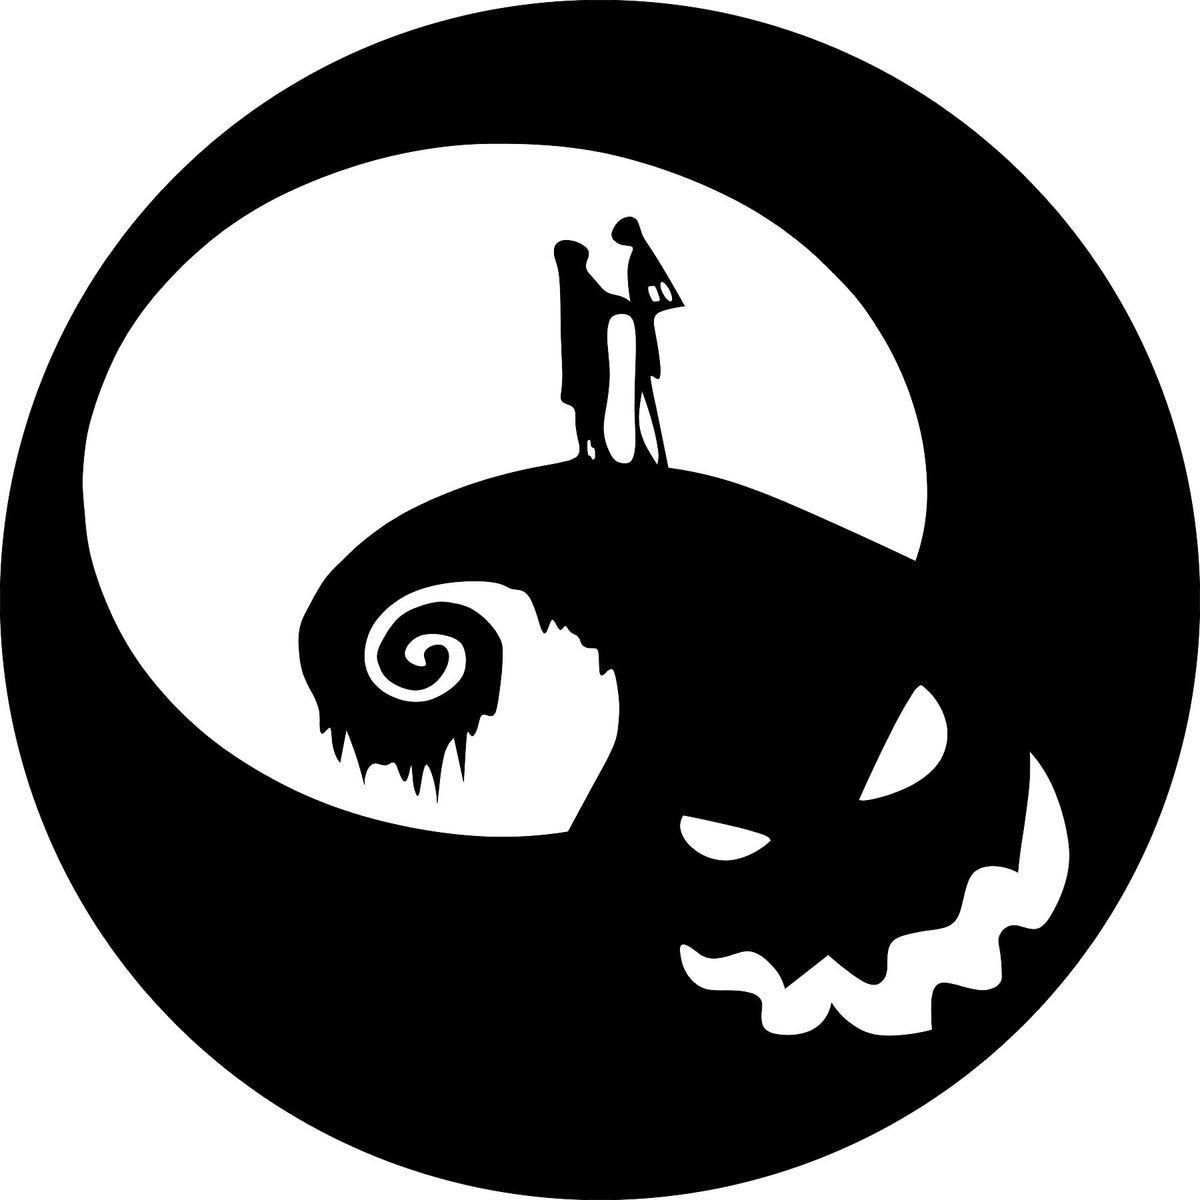 Nightmare before christmas clipart 2 » Clipart Portal.